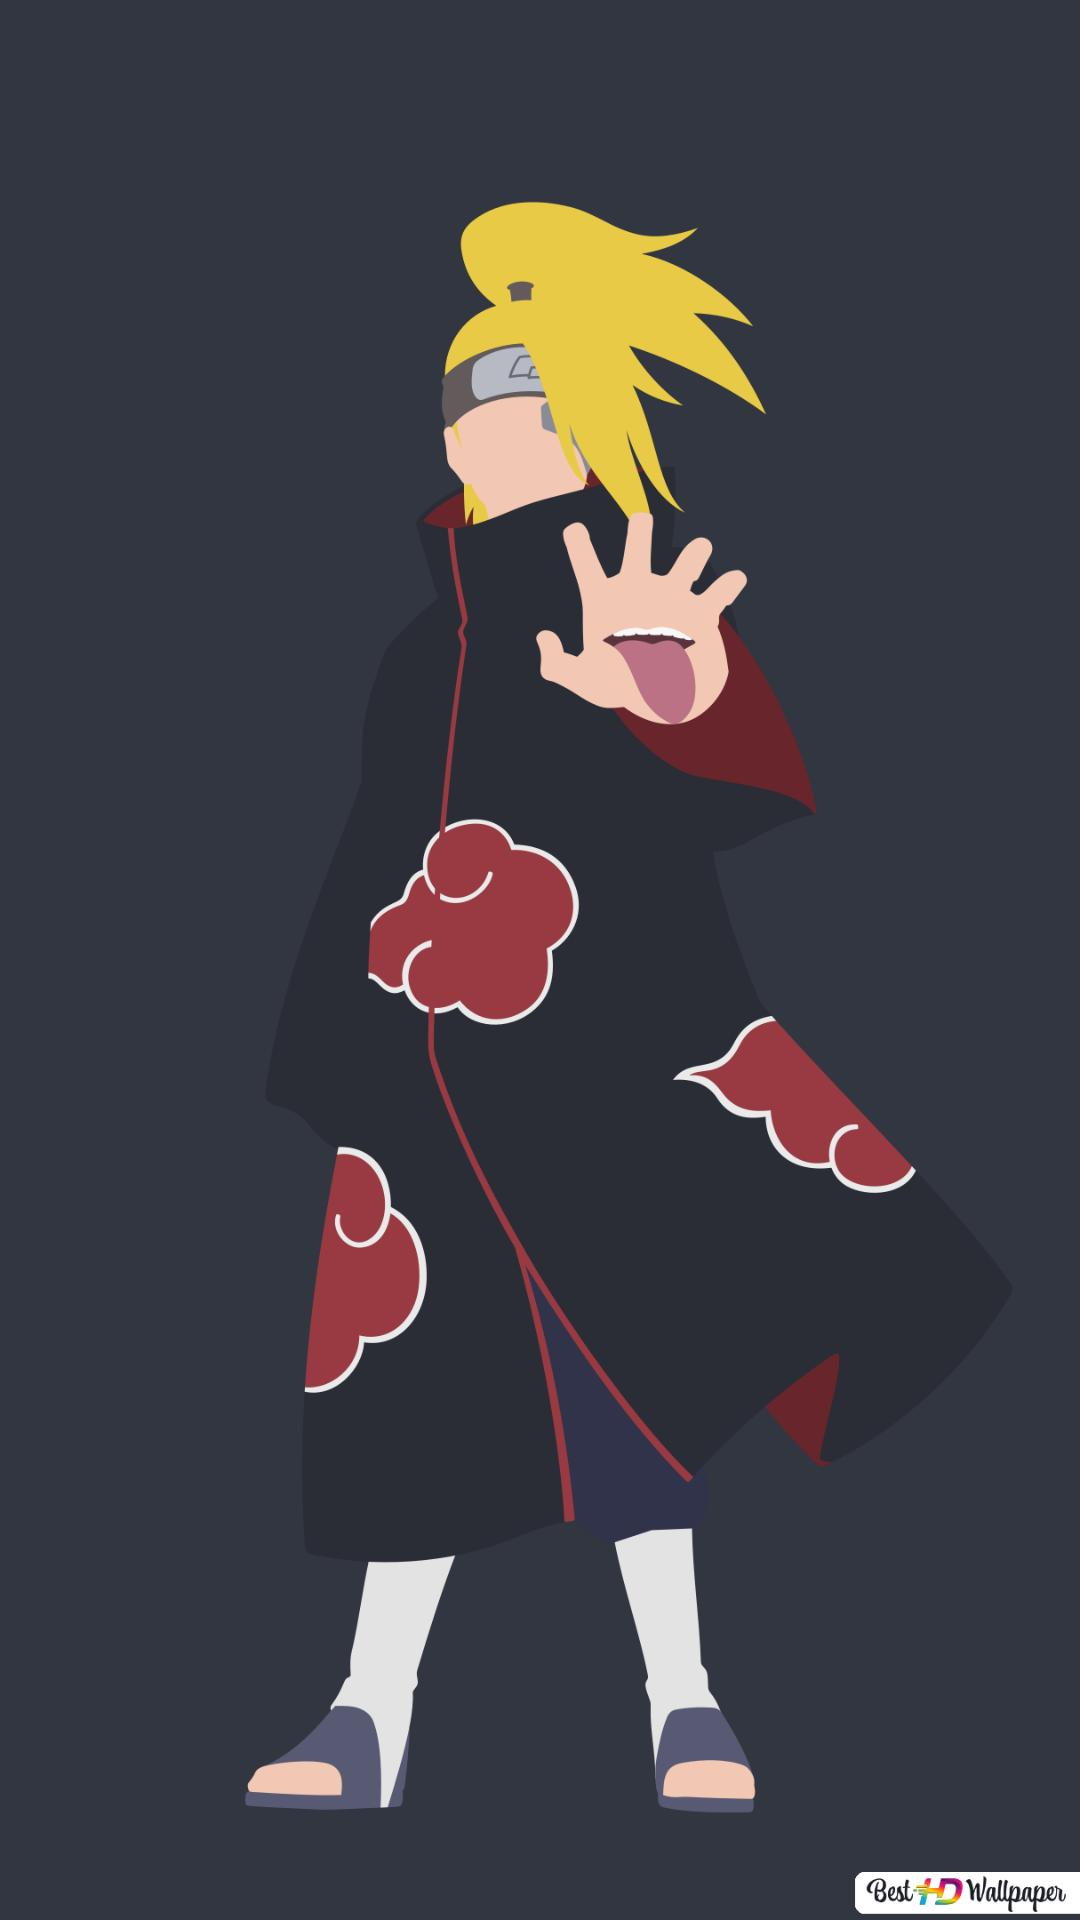 deidara of naruto wallpaper 1080x1920 6466 165